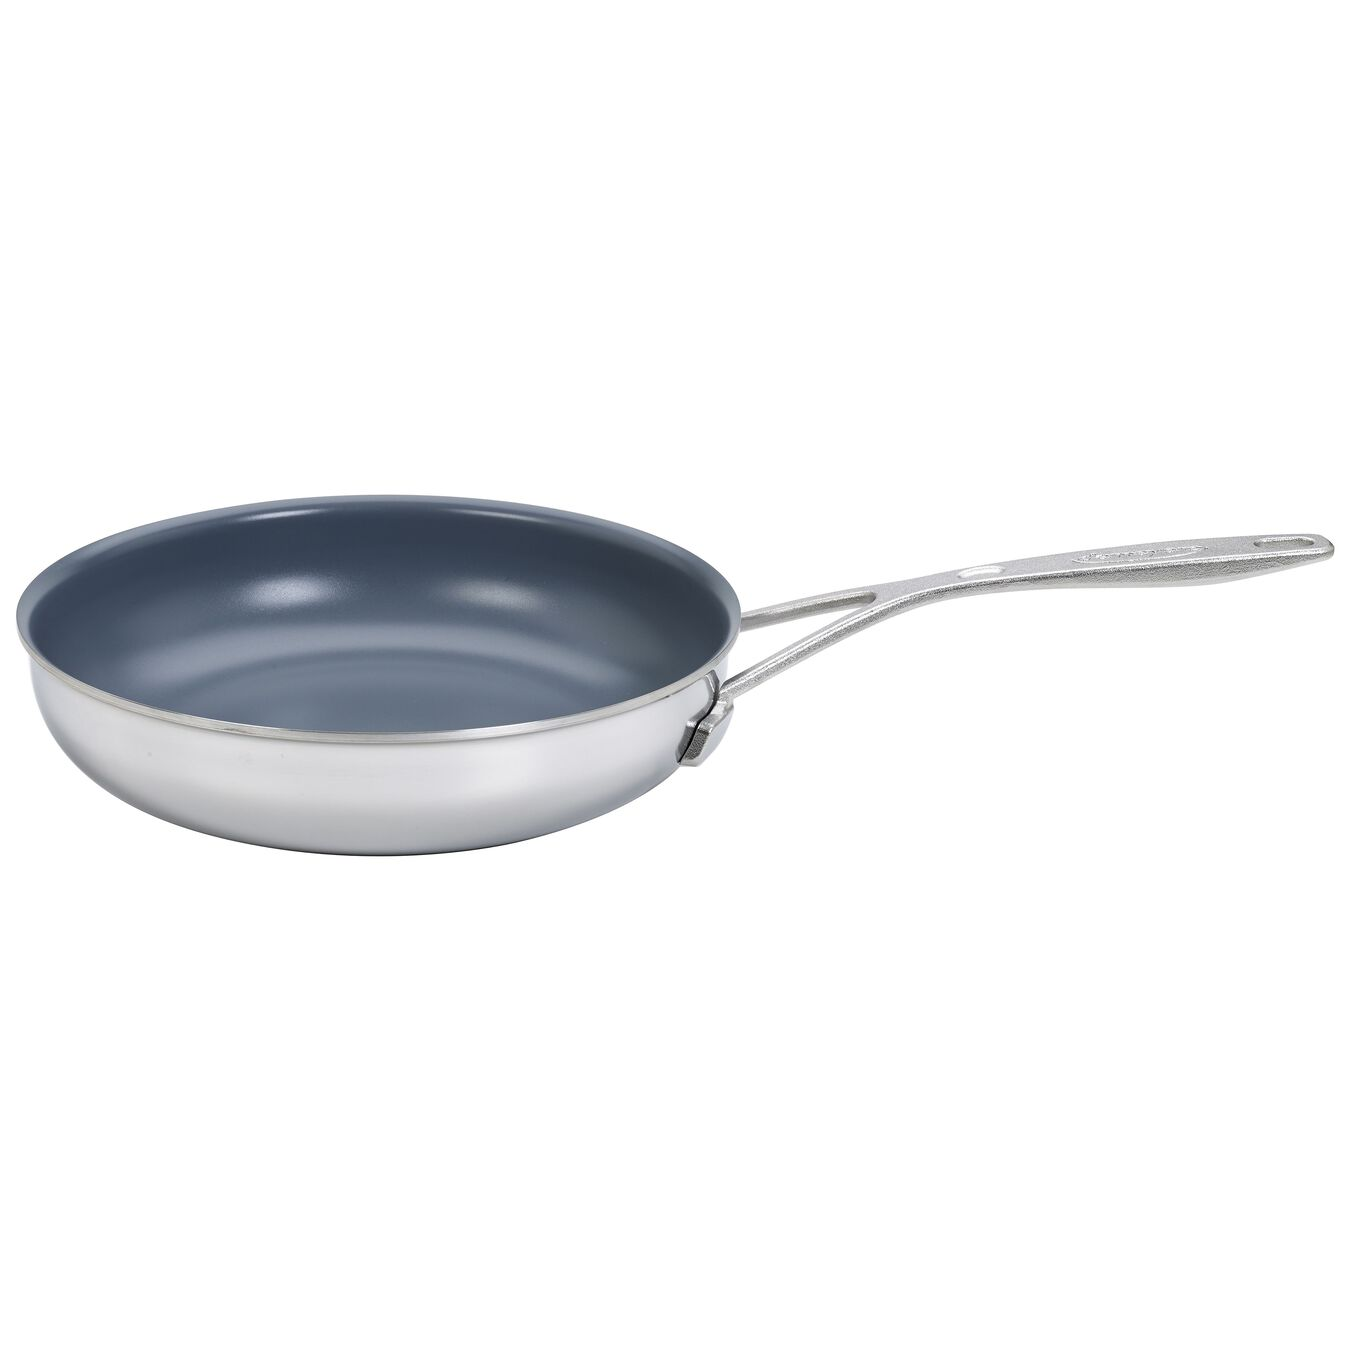 8-inch, 18/10 Stainless Steel, Non-stick, Ceramic, Frying pan,,large 1